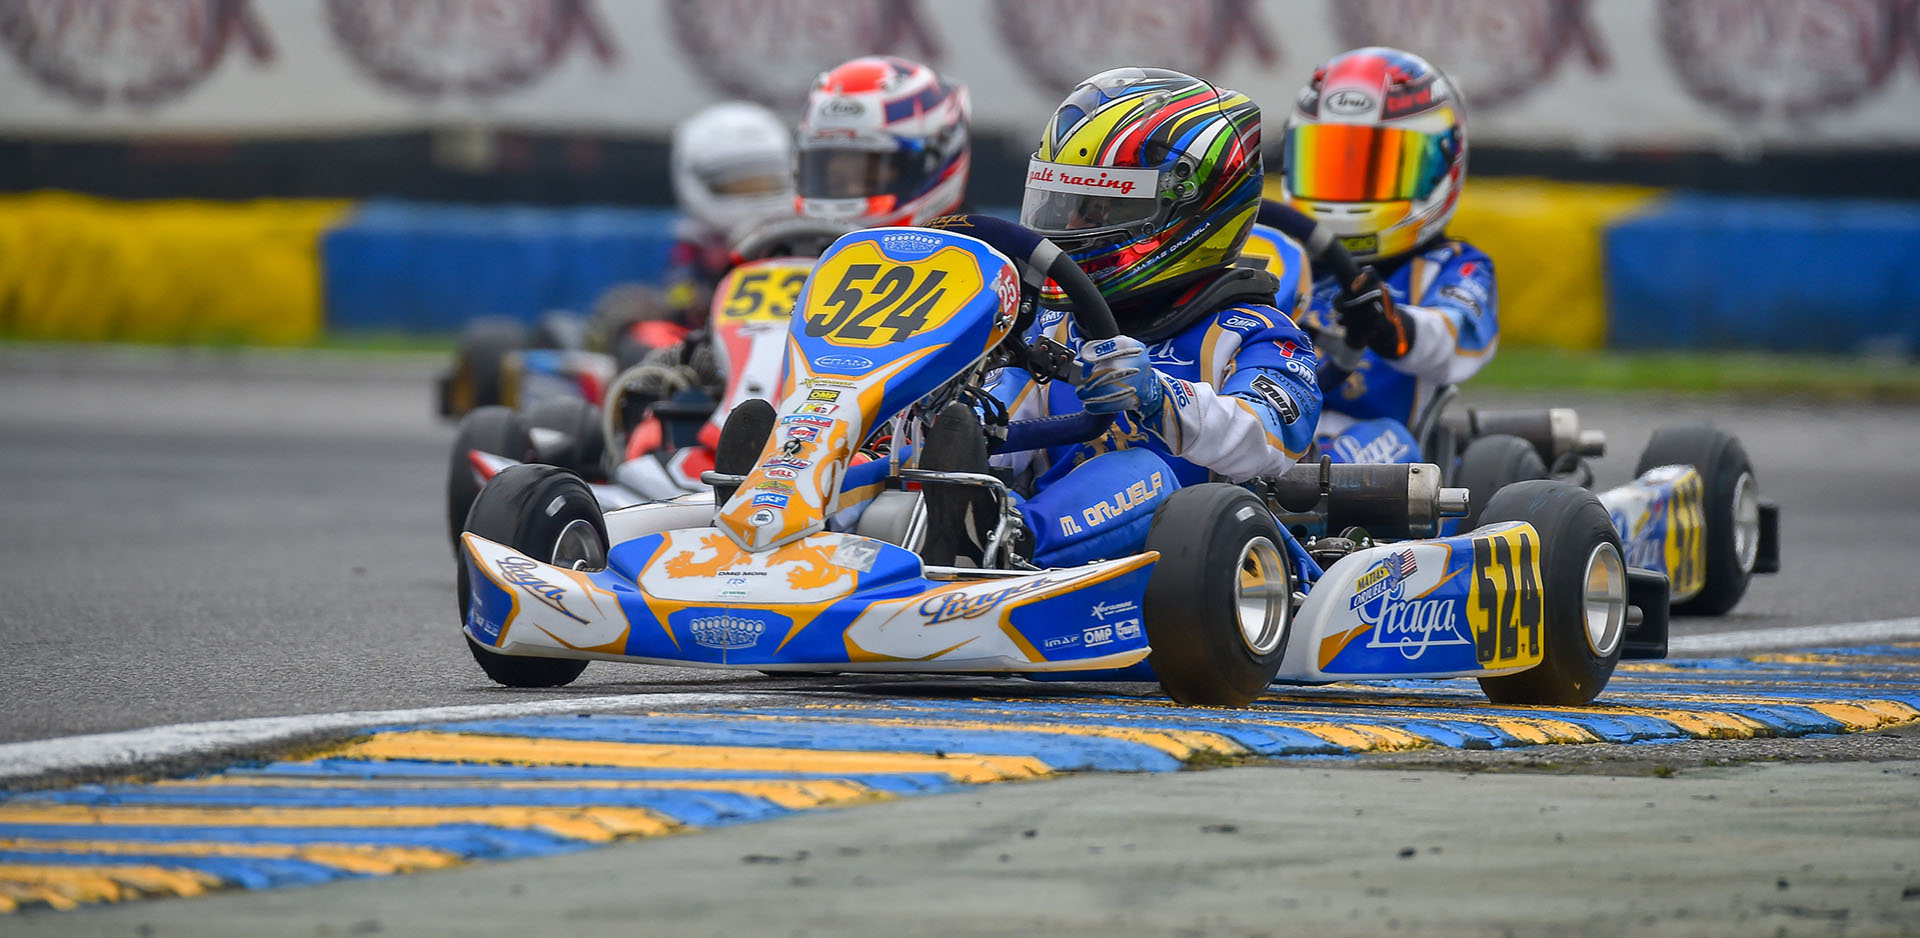 Formula K | Pole position and the podium in round 2 of the WSK Open Cup